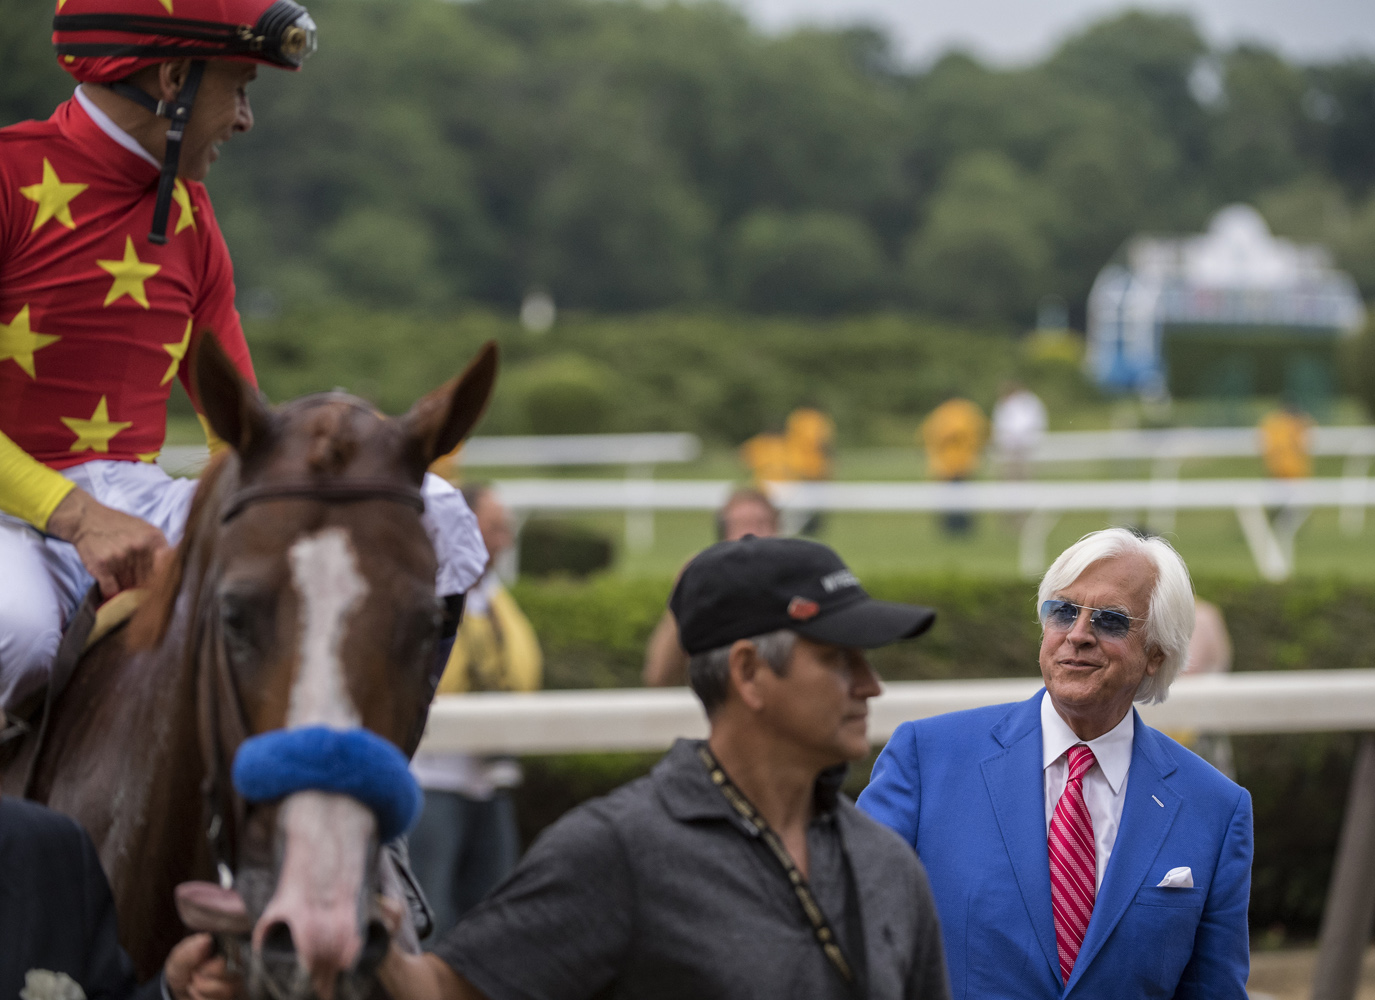 Bob Baffert and Mike Smith share a moment after Justify's Belmont Stakes and Triple Crown victory in 2018 (Skip Dickstein)